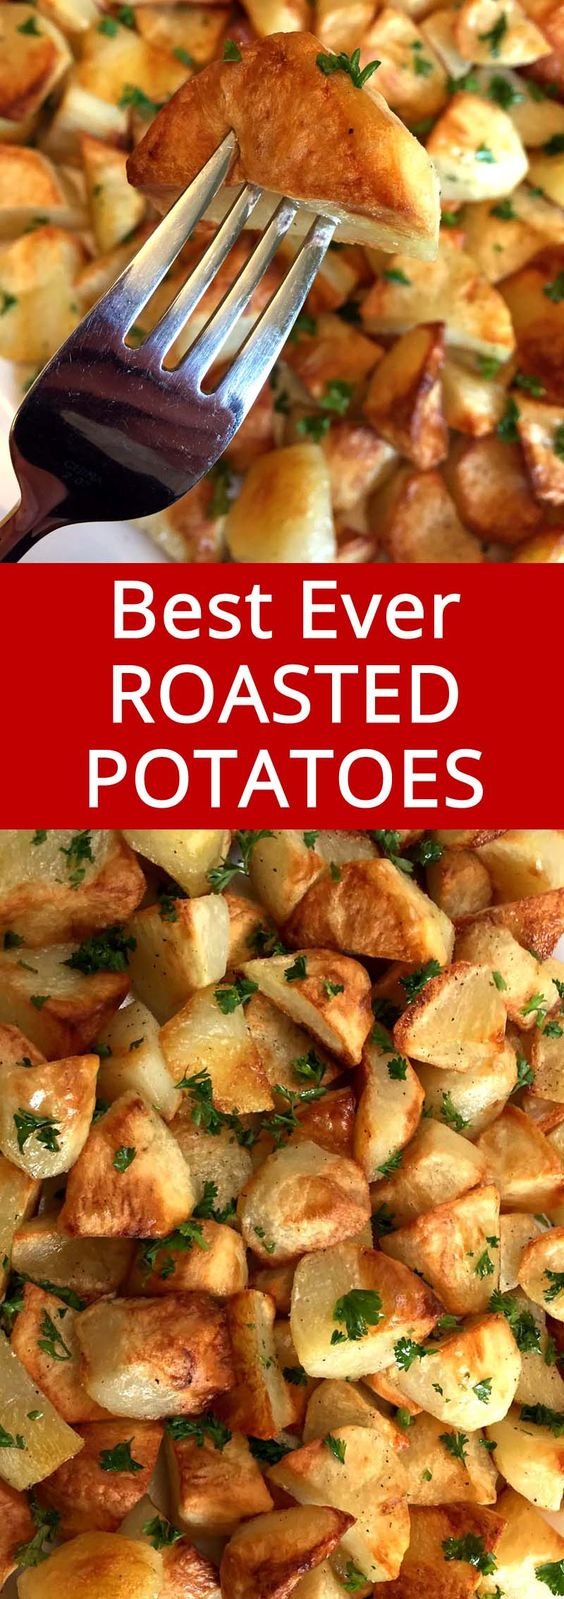 These oven roasted potatoes are amazing! Perfectly golden brown and crispy on the outside, tender on the inside – this is the best roasted potatoes recipe ever!